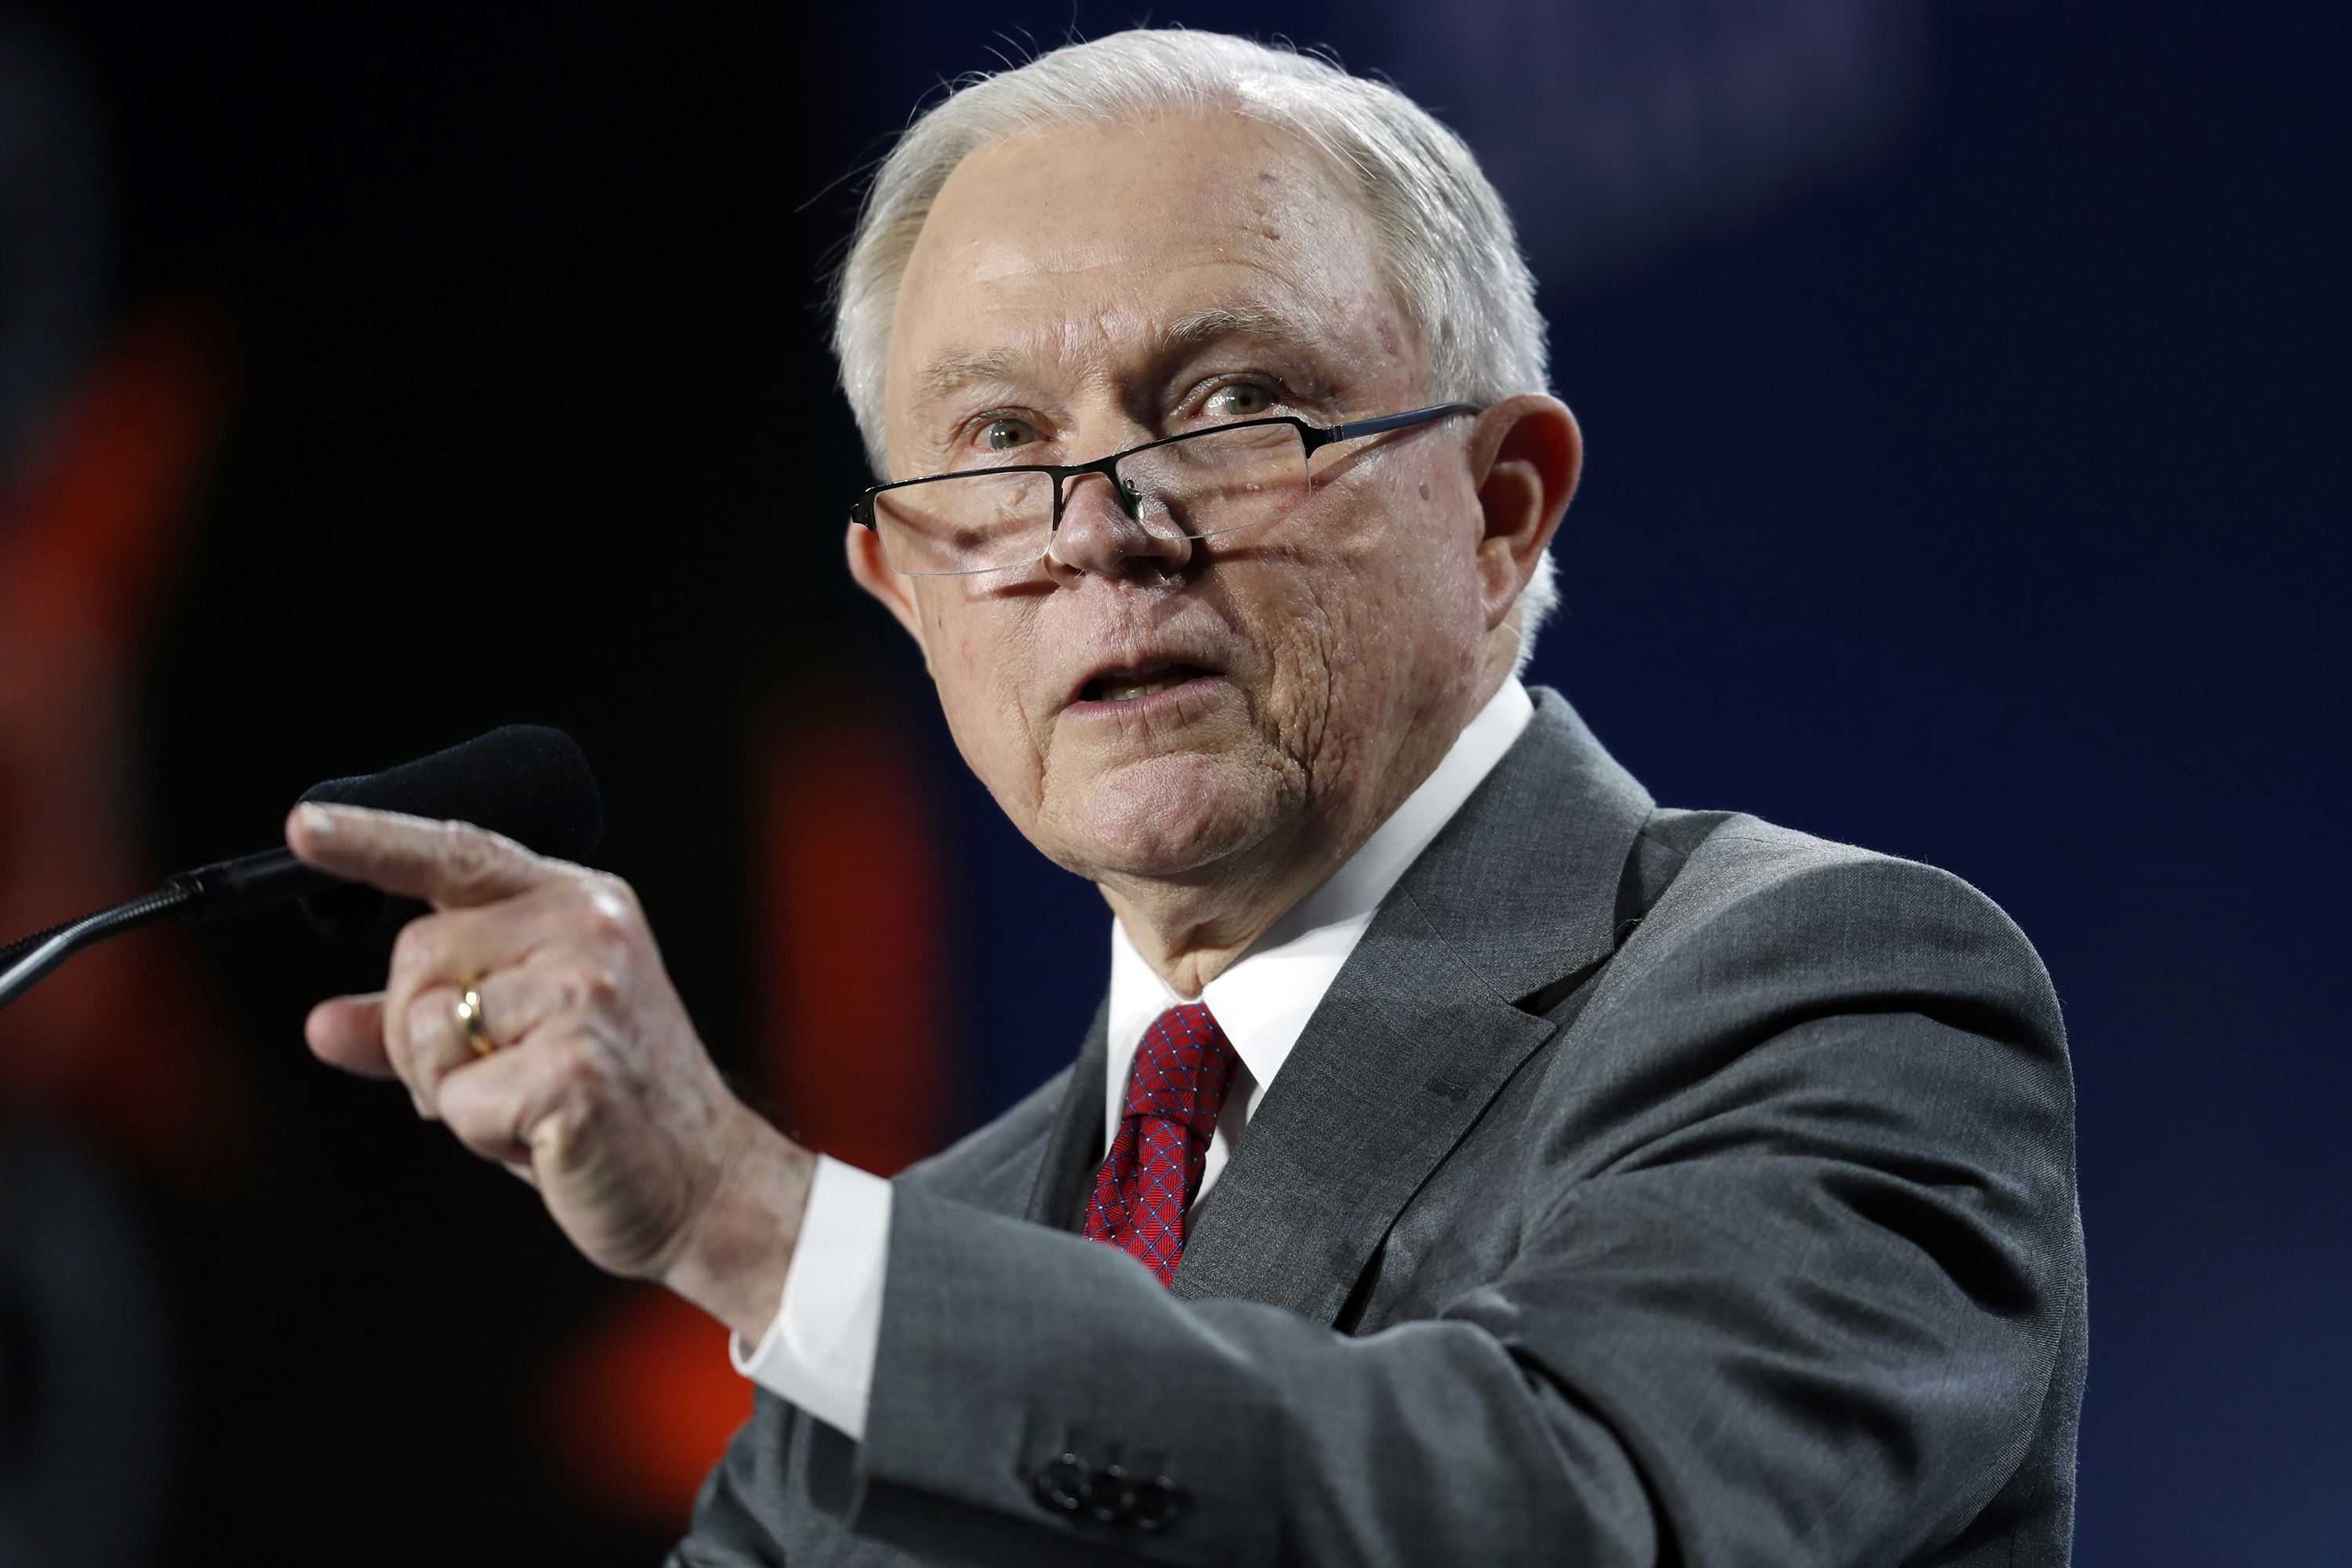 Photo: U.S. Attorney General Jeff Sessions at the Western Conservative Summit 1